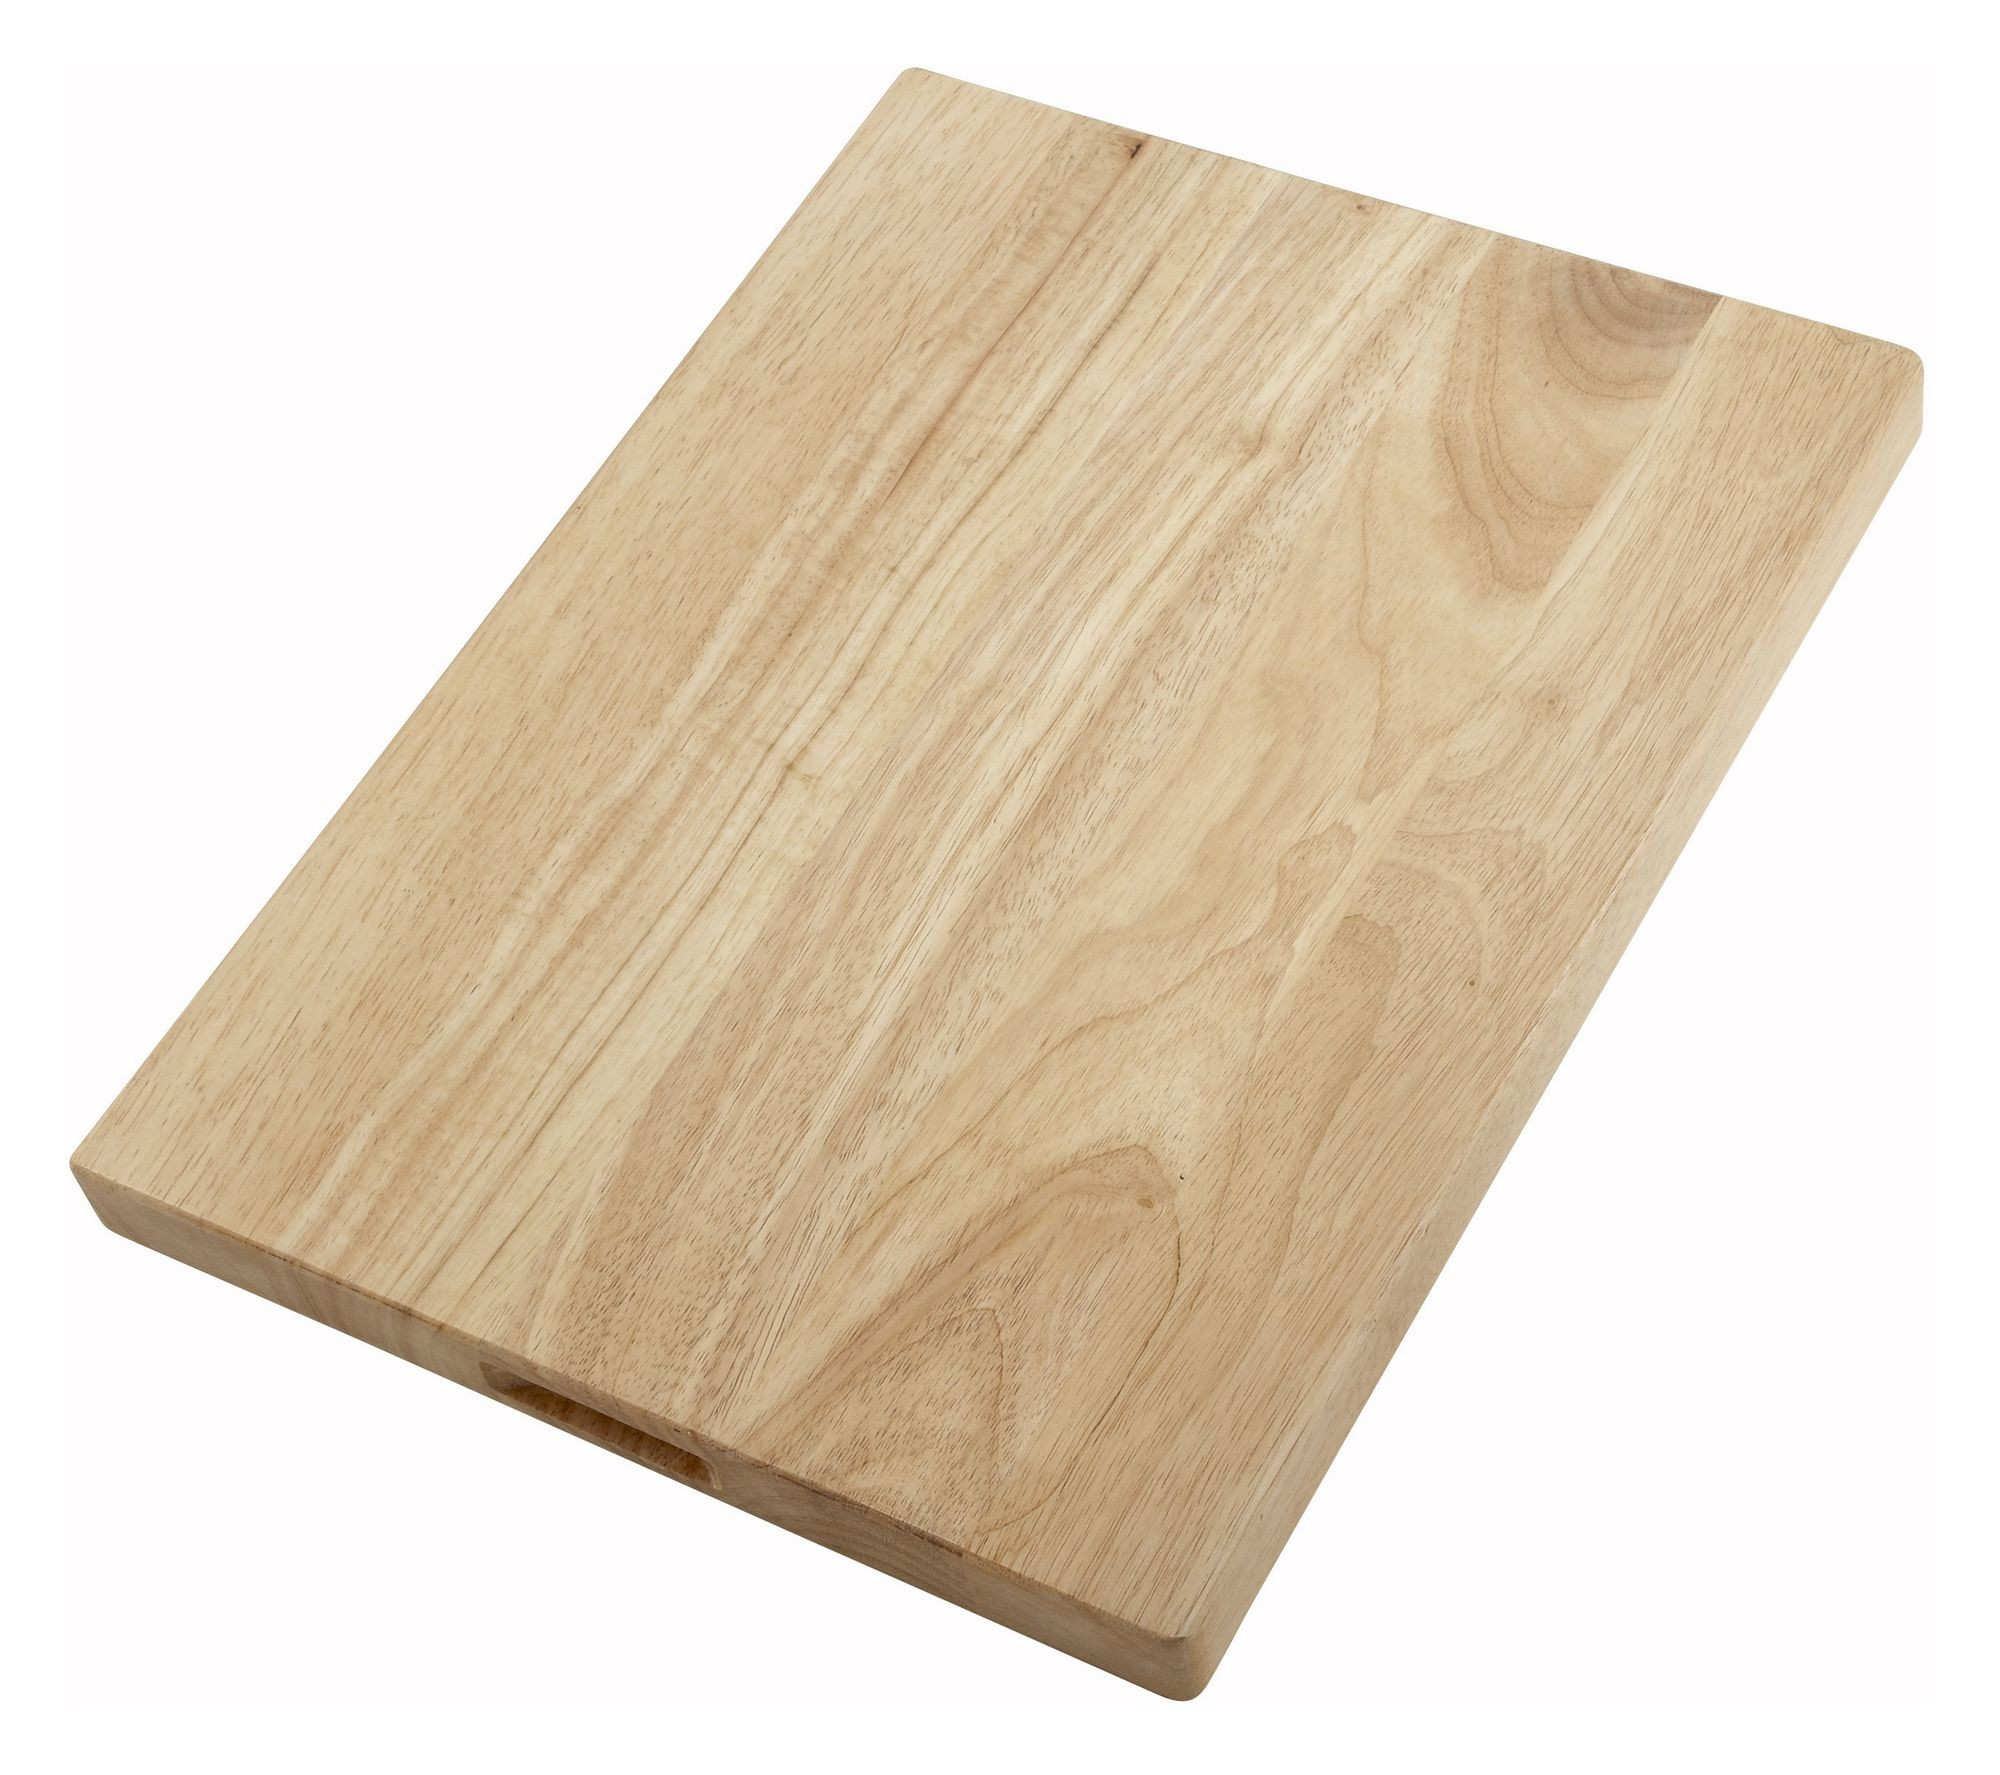 Wood Cutting Board - 12 X 18 X 1-3/4 Thick